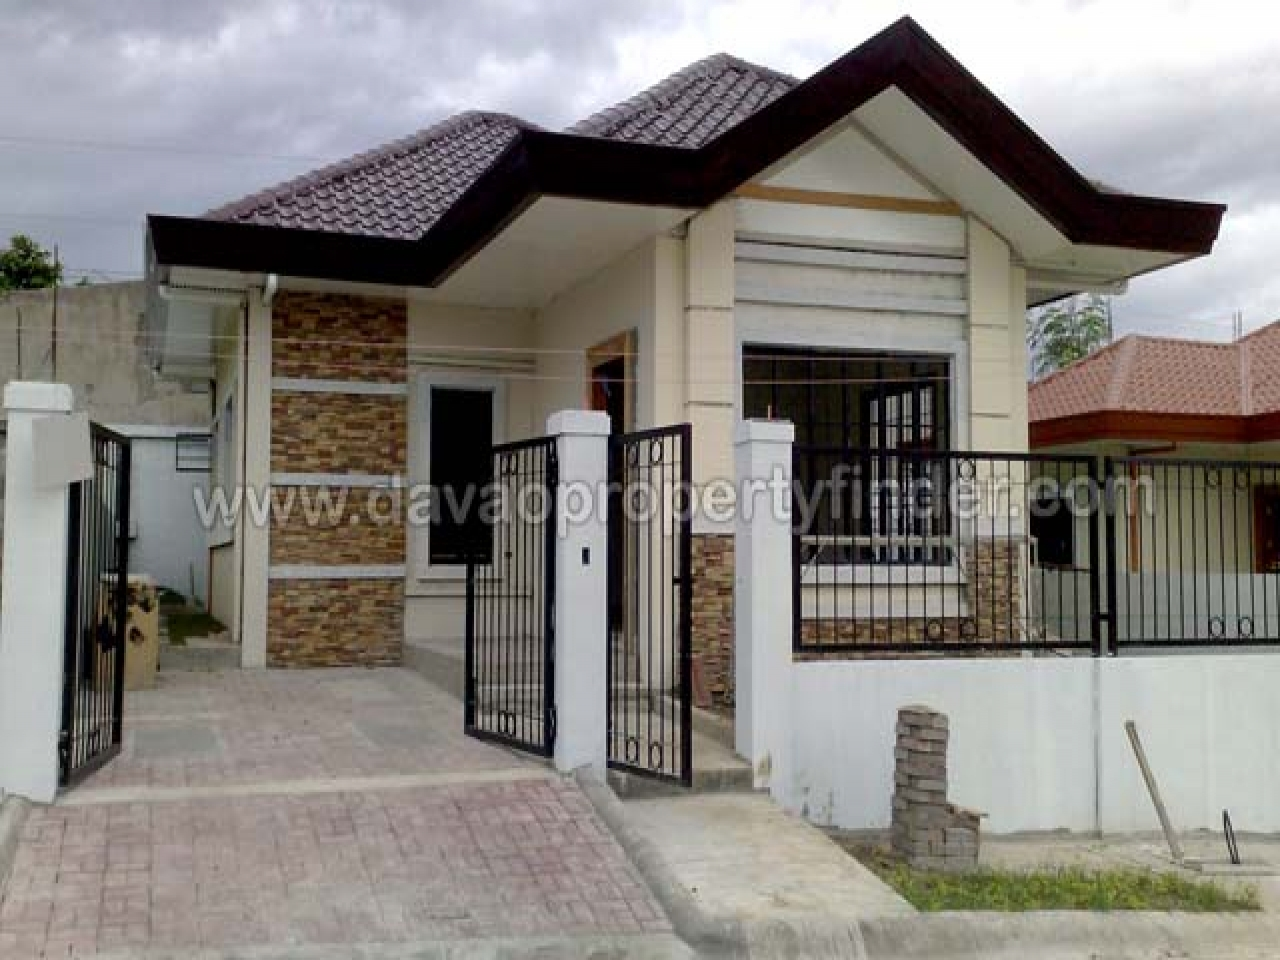 Bungalow Type House Philippines Houses Sale Baguio